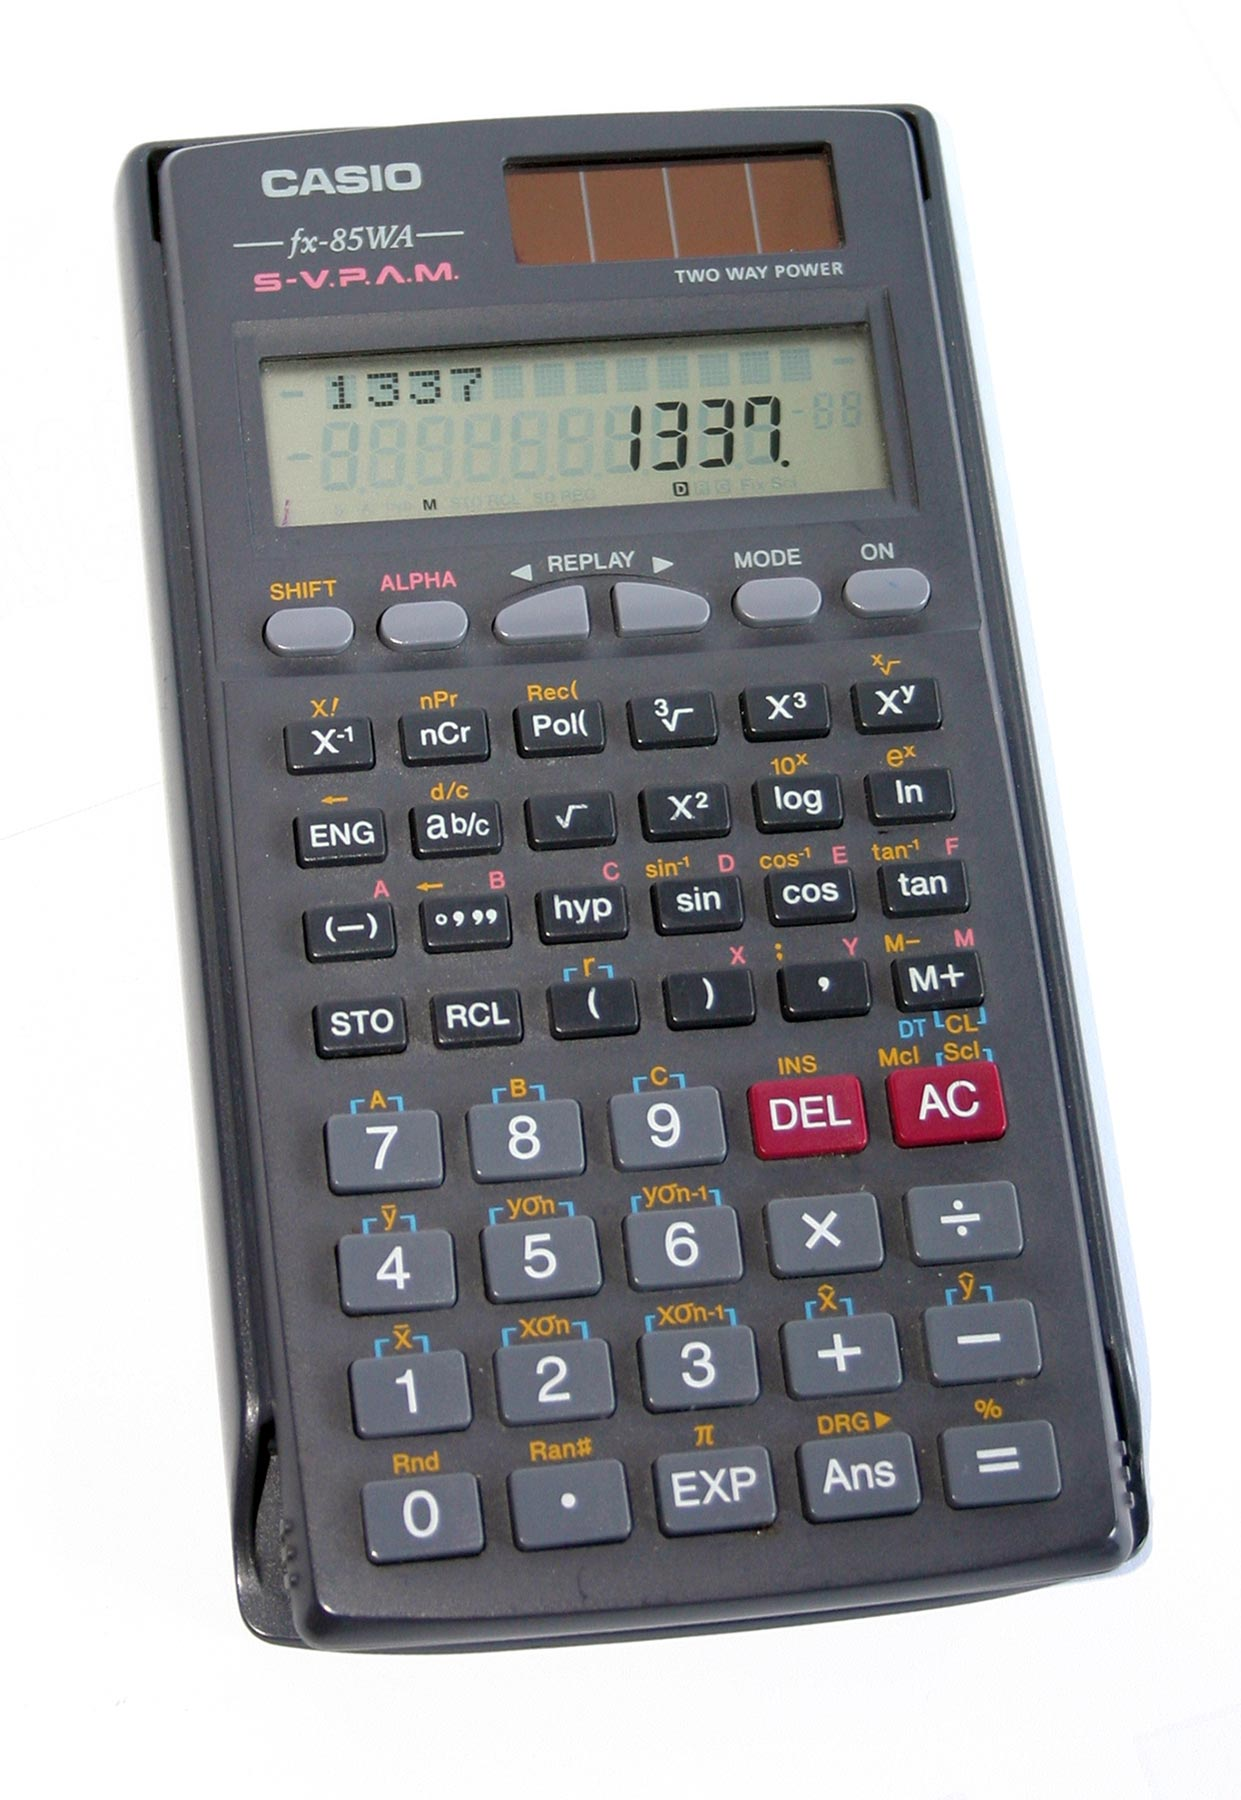 Calculator - 05 photo